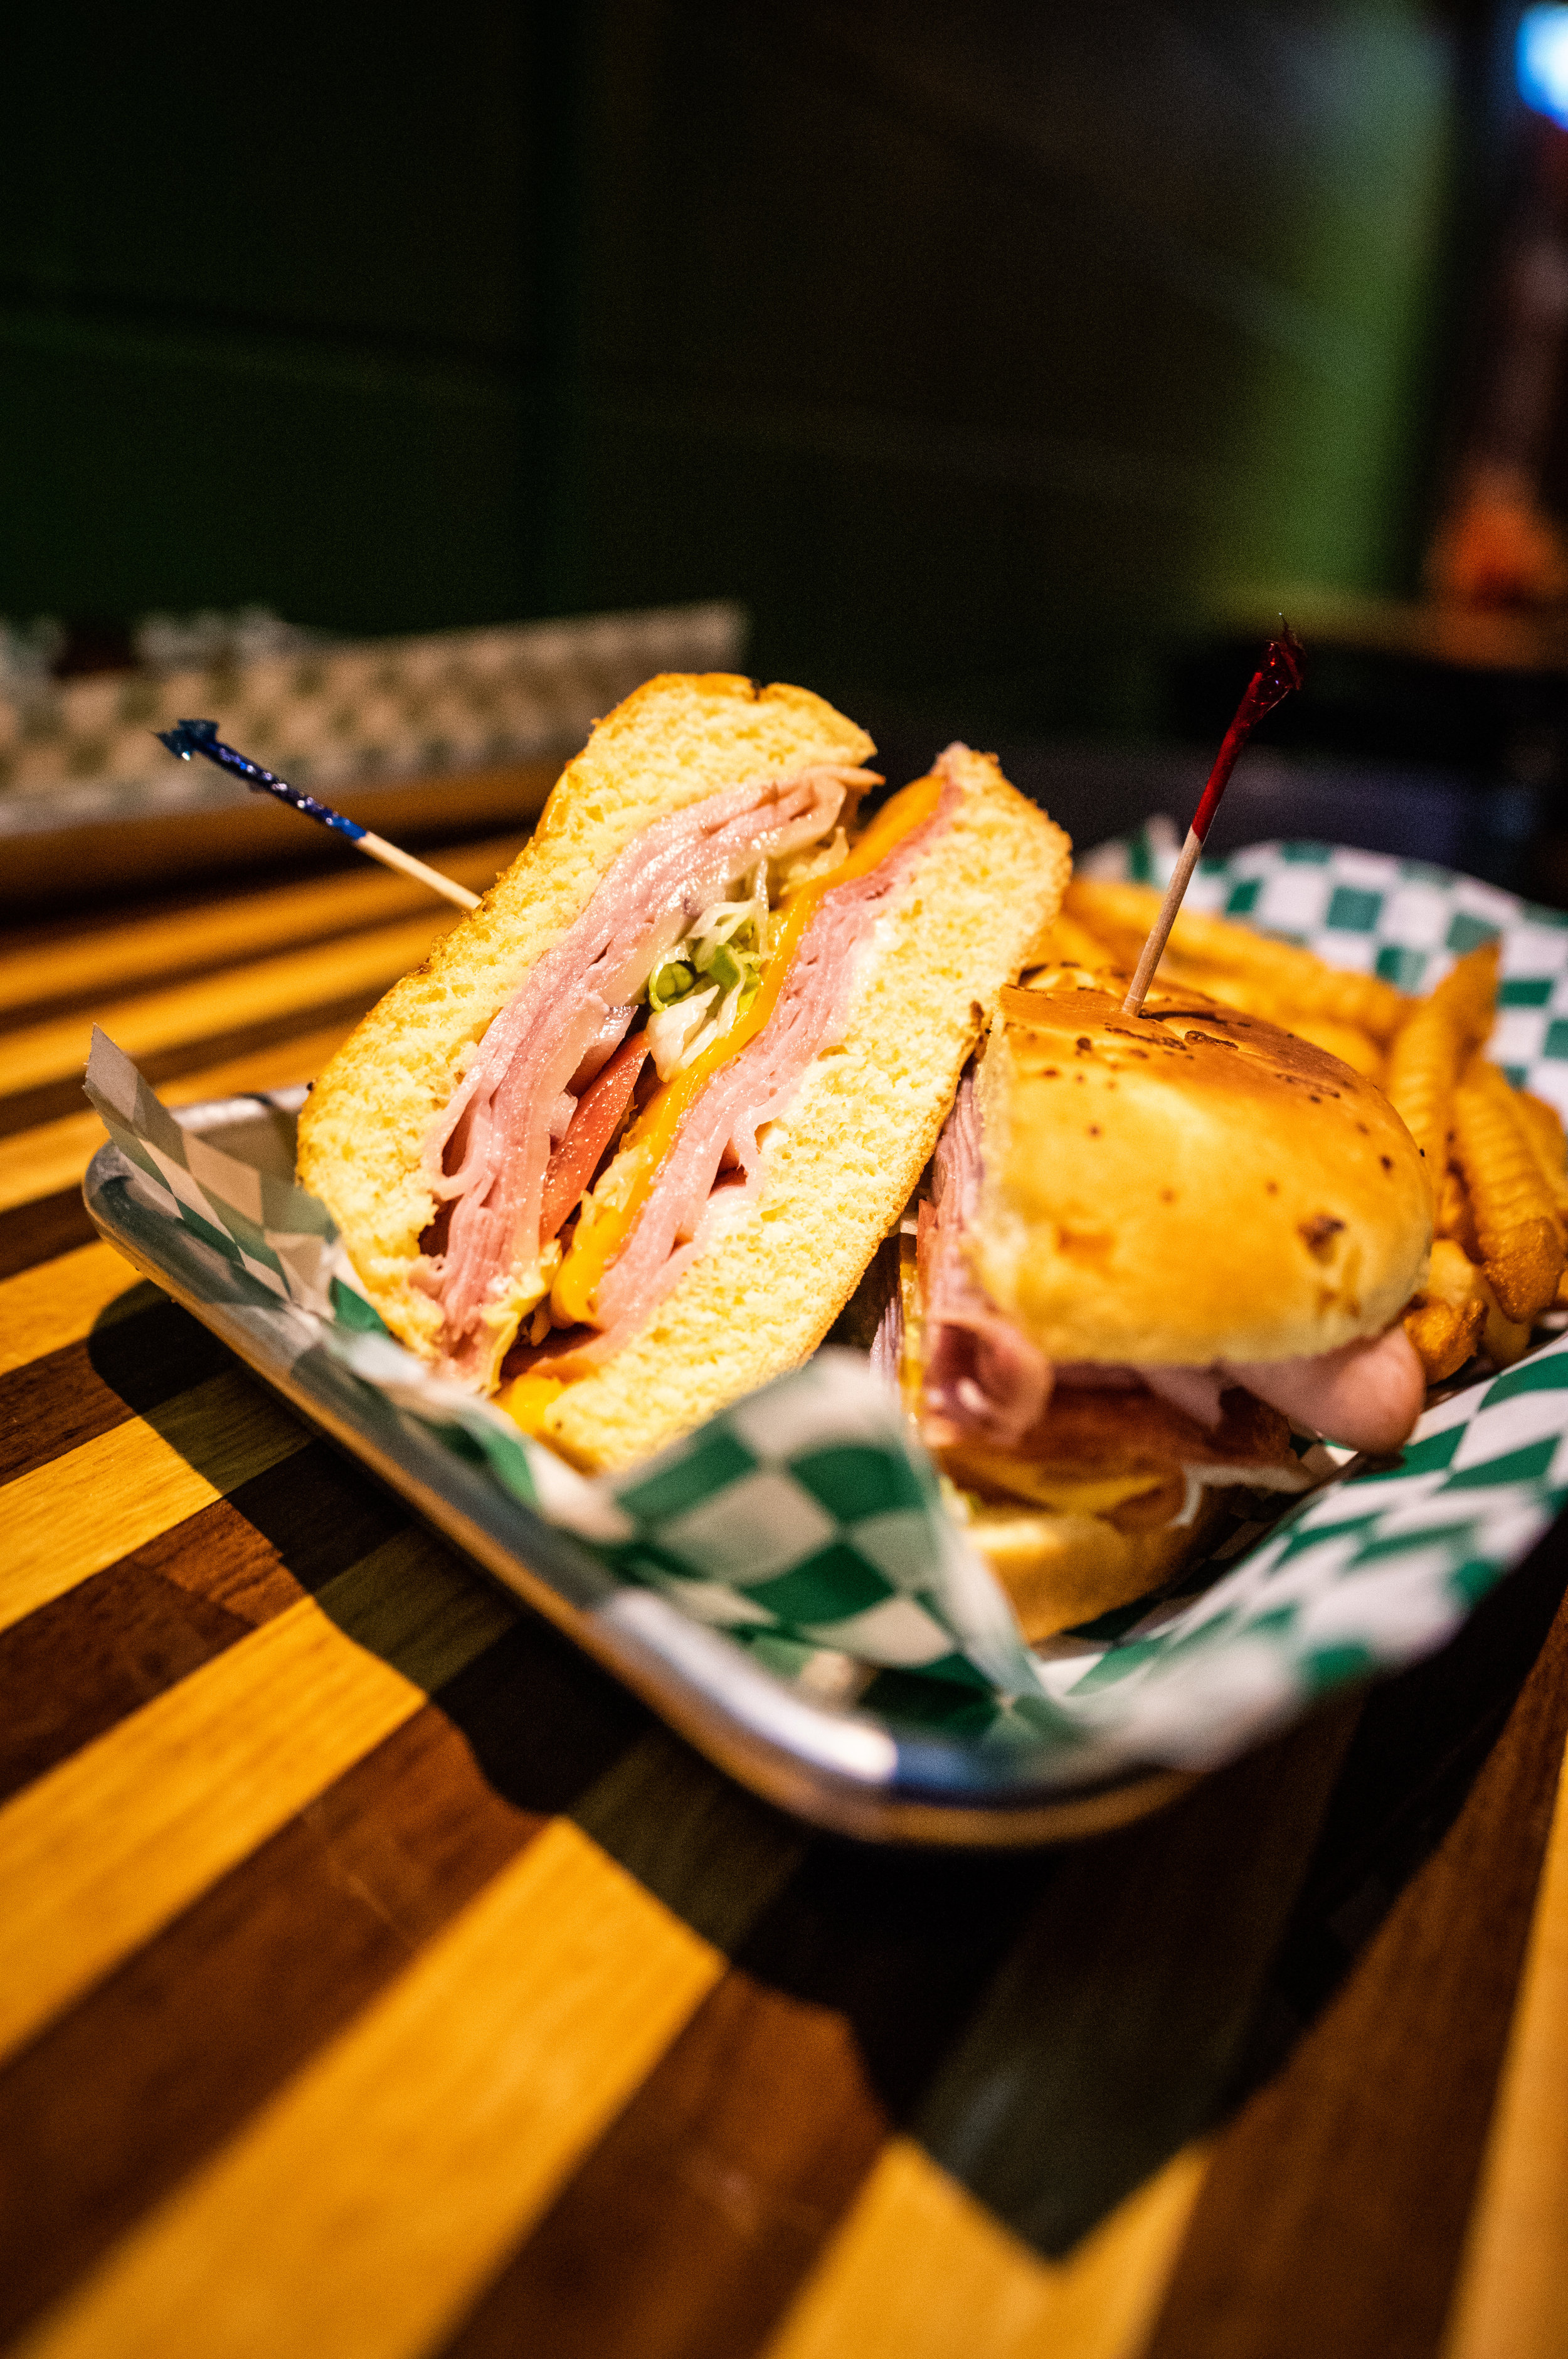 Close-up of the cross section of Rip's Favorite Delight - a light deli-club style sandwich.